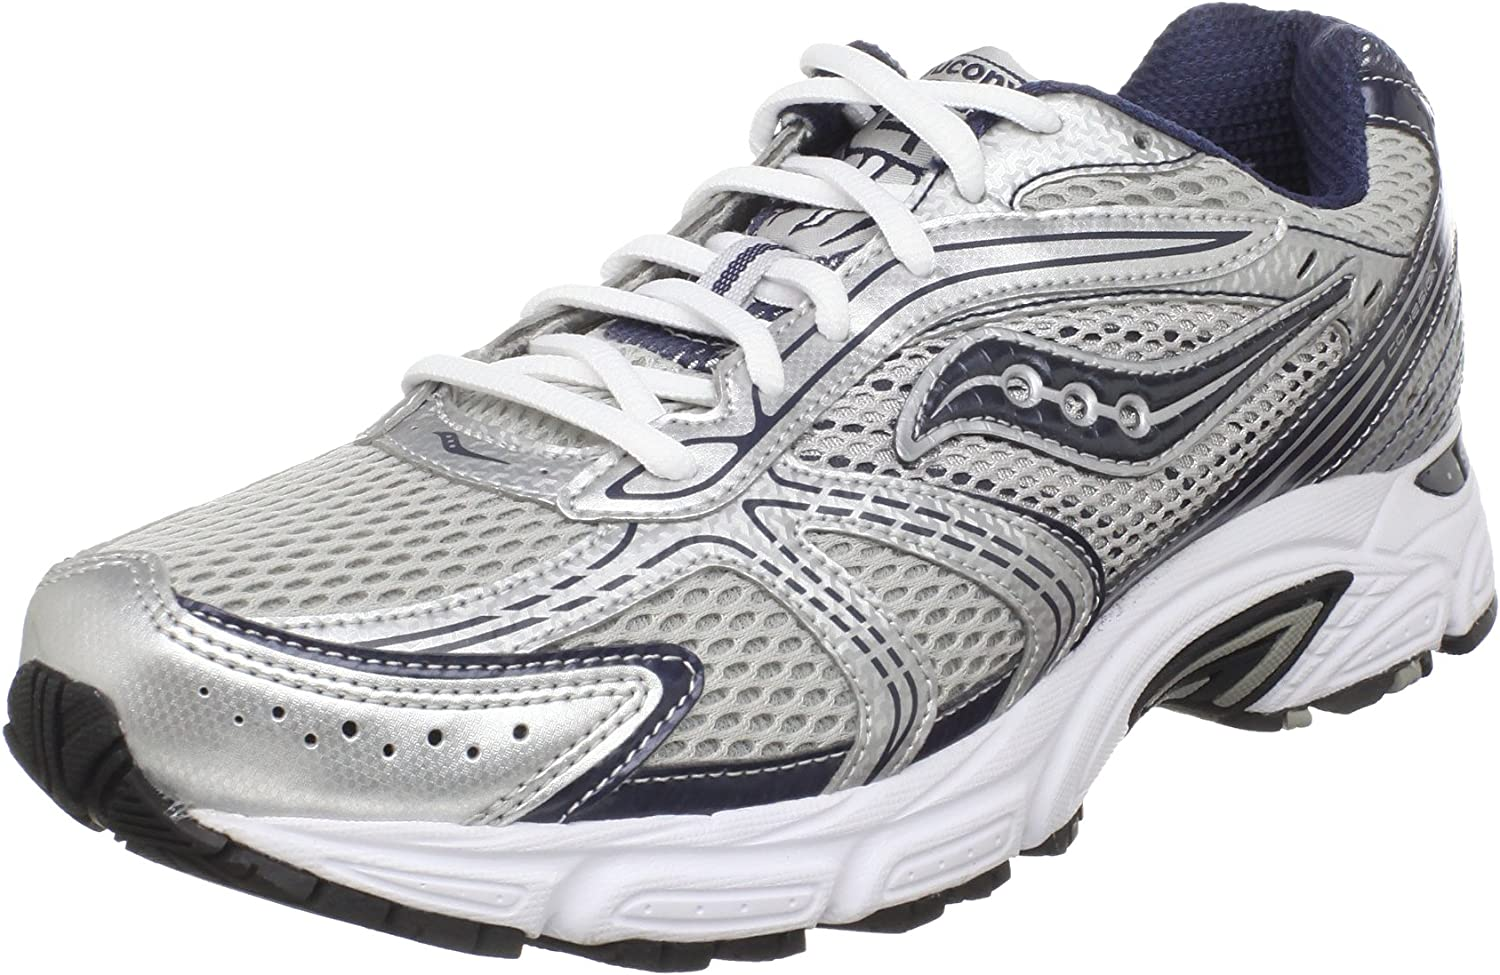 Grid Cohesion 4 Running Shoe